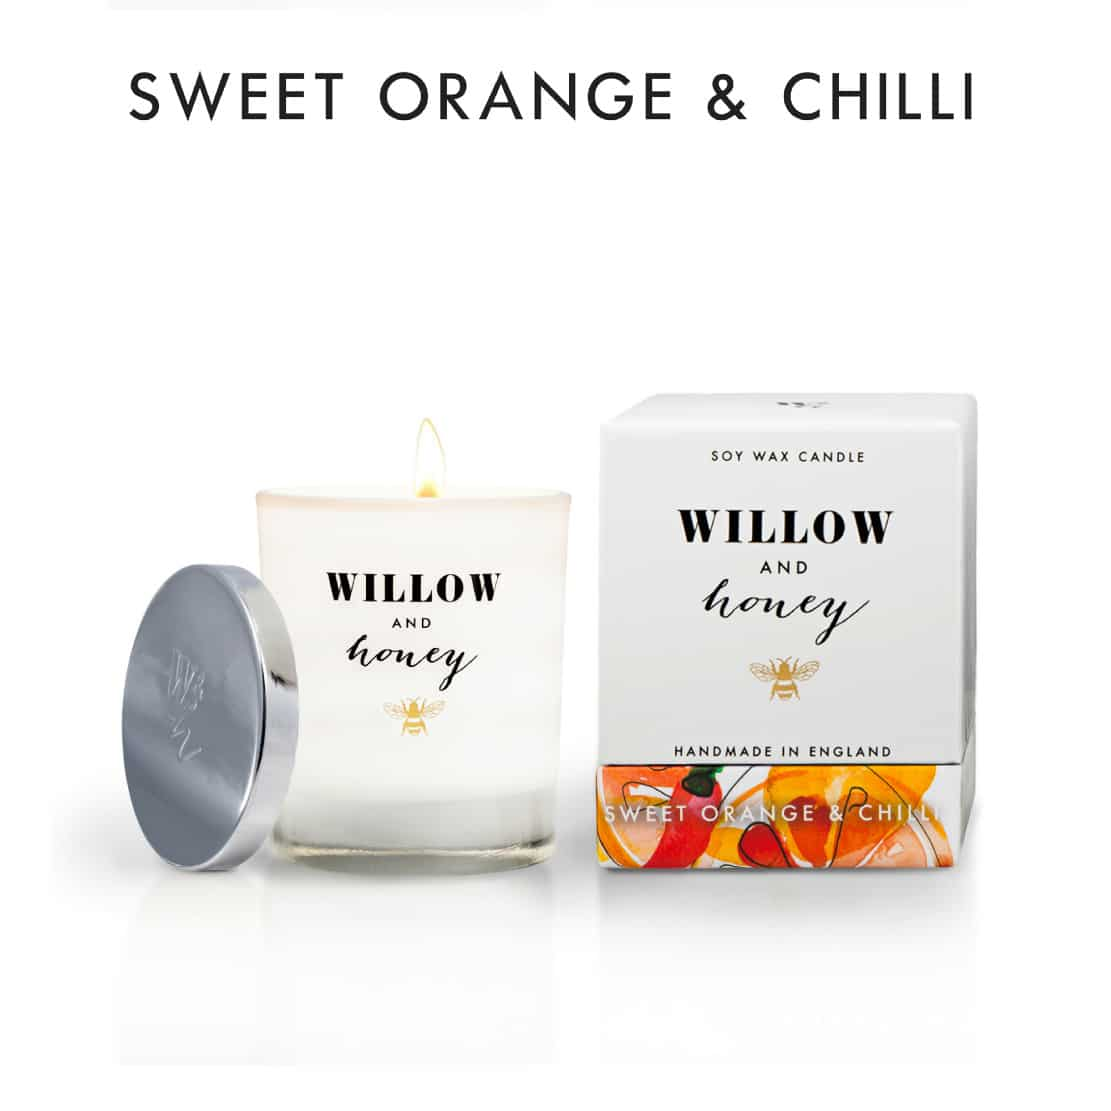 Willow and Honey Sweet Orange and Chilli Candle 220g